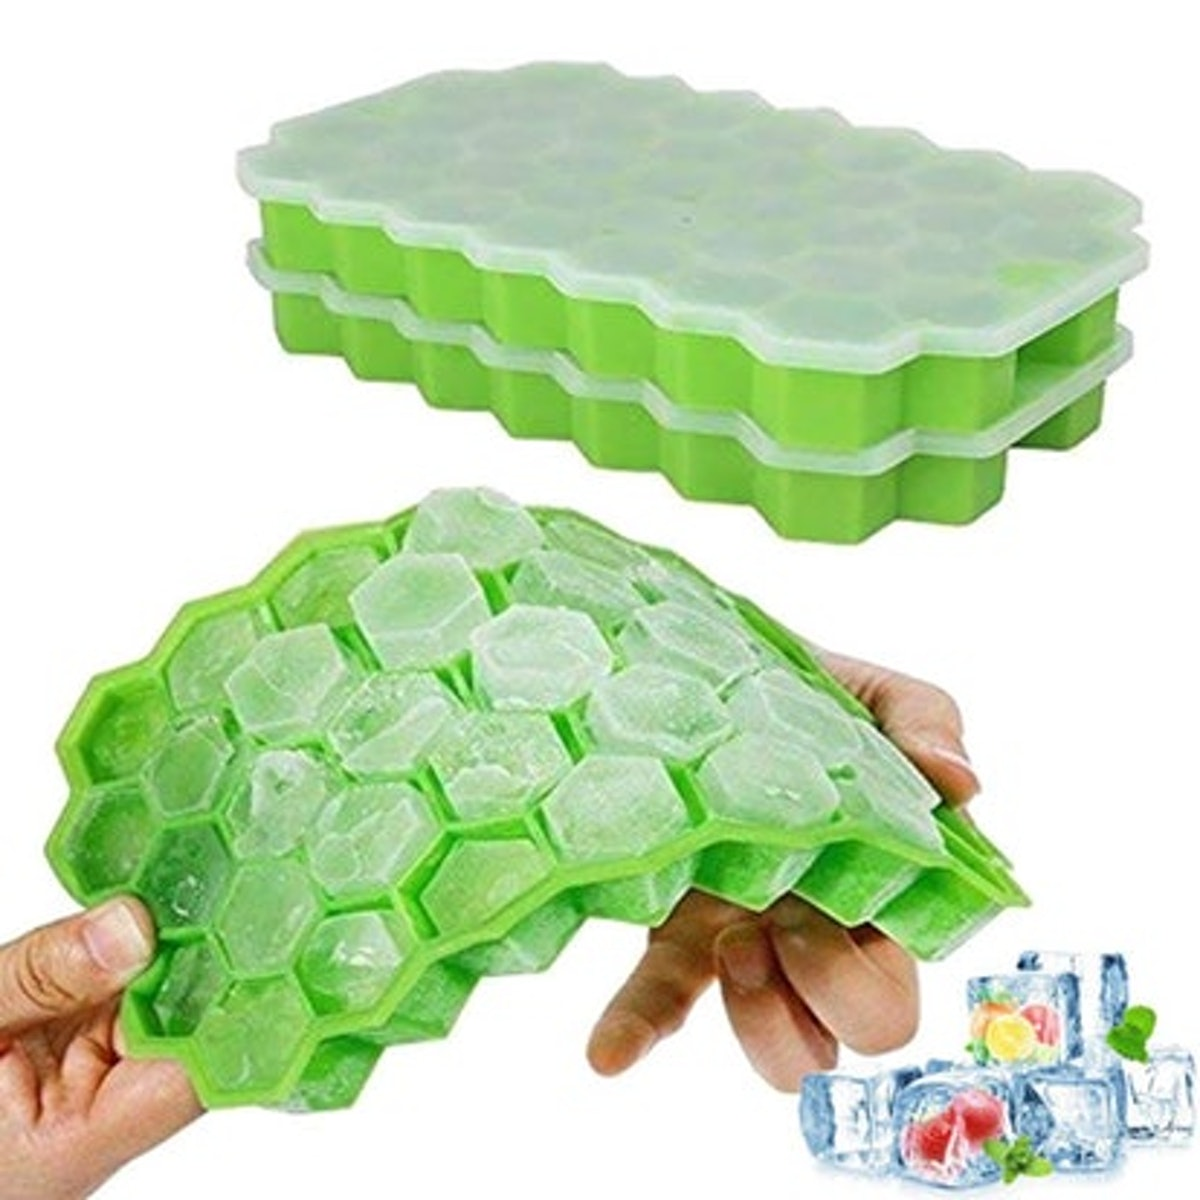 Ouddy Ice Cube Trays (2 Pack)